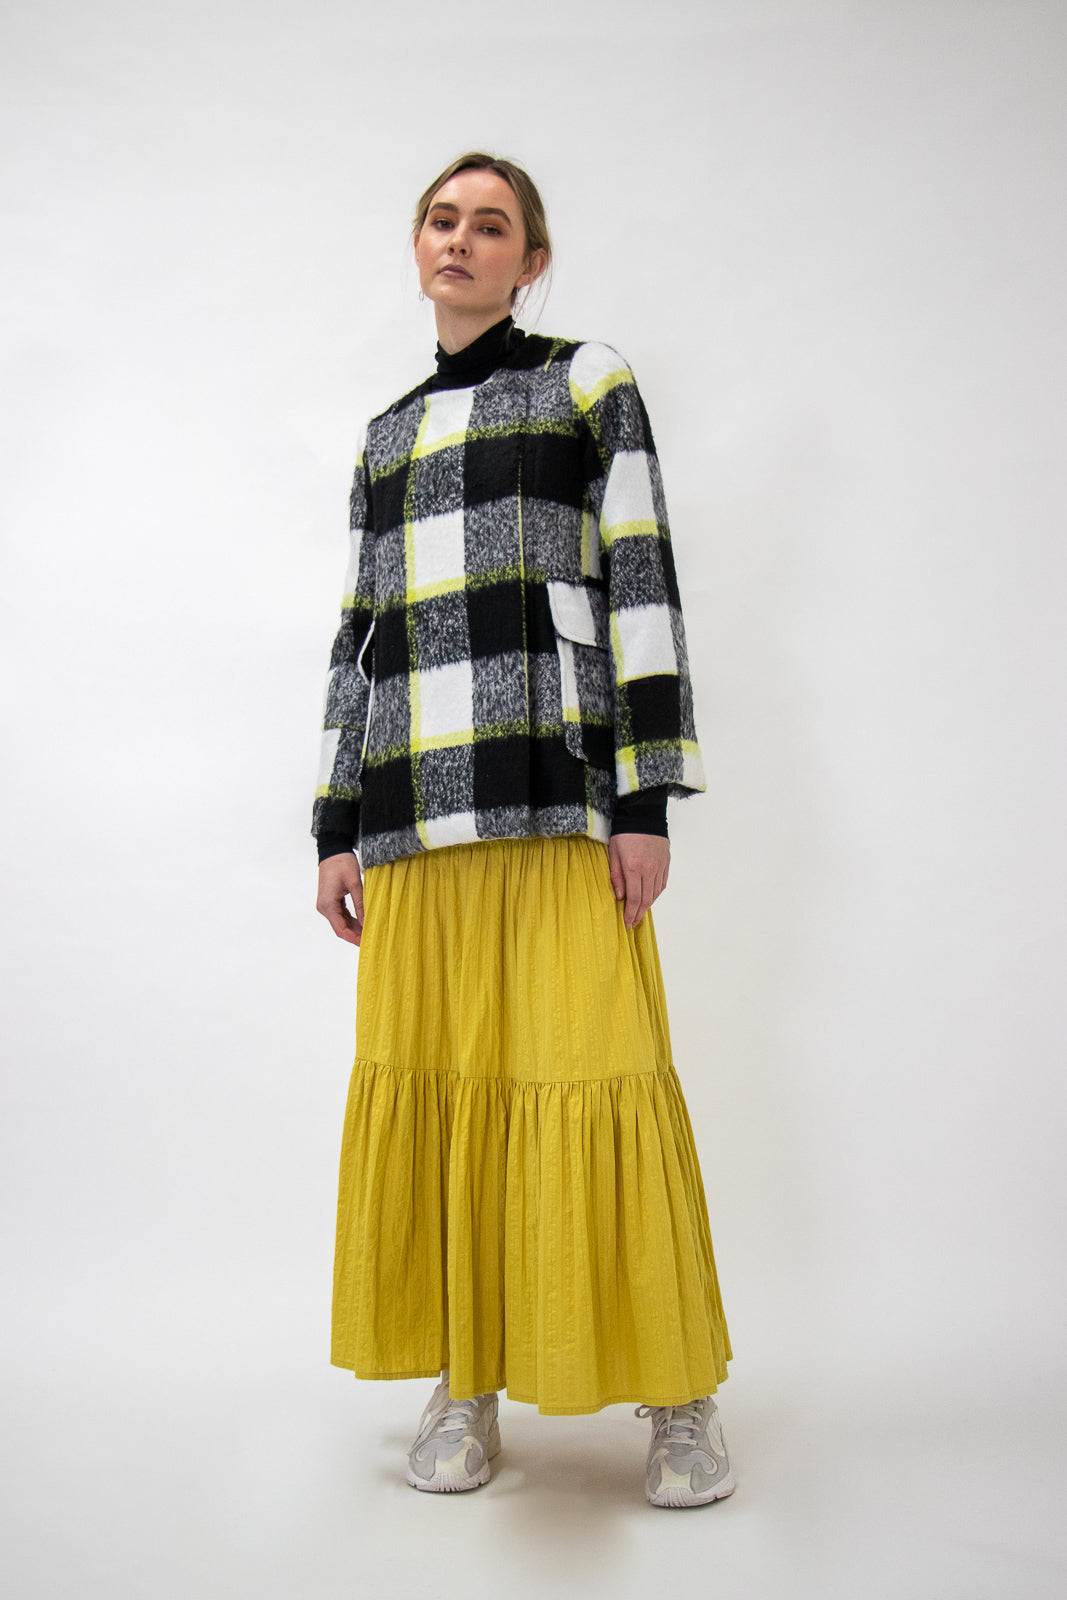 Staple + Cloth Teresa Skirt - Chartruese